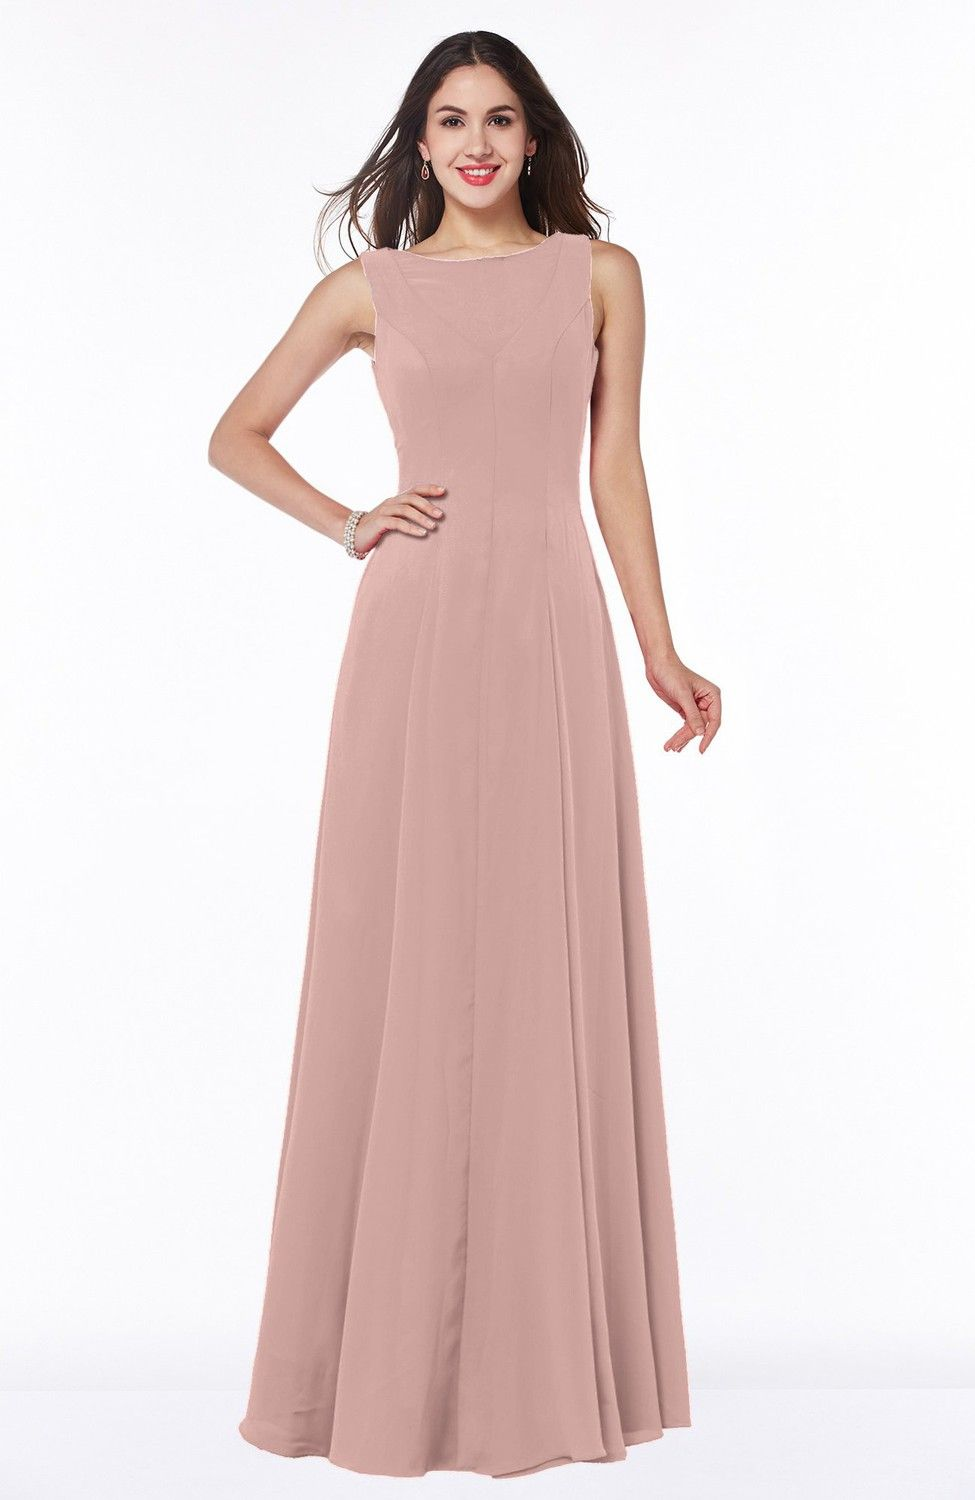 Dusty Rose Bridesmaid Dress - Classic A-line Bateau Sleeveless ...